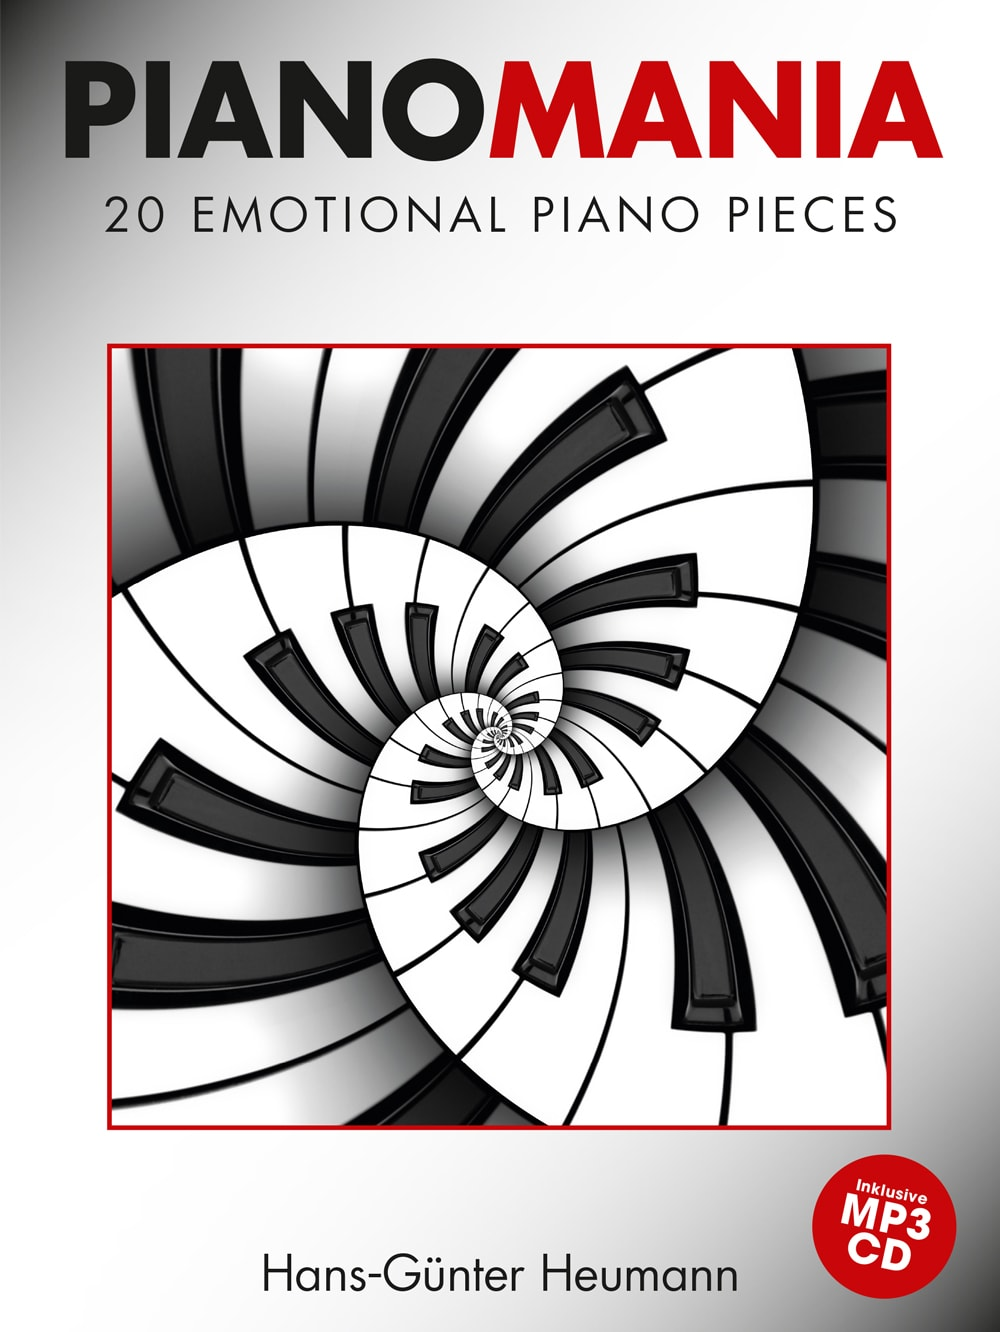 Pianomania: 20 Emotional Piano Pieces